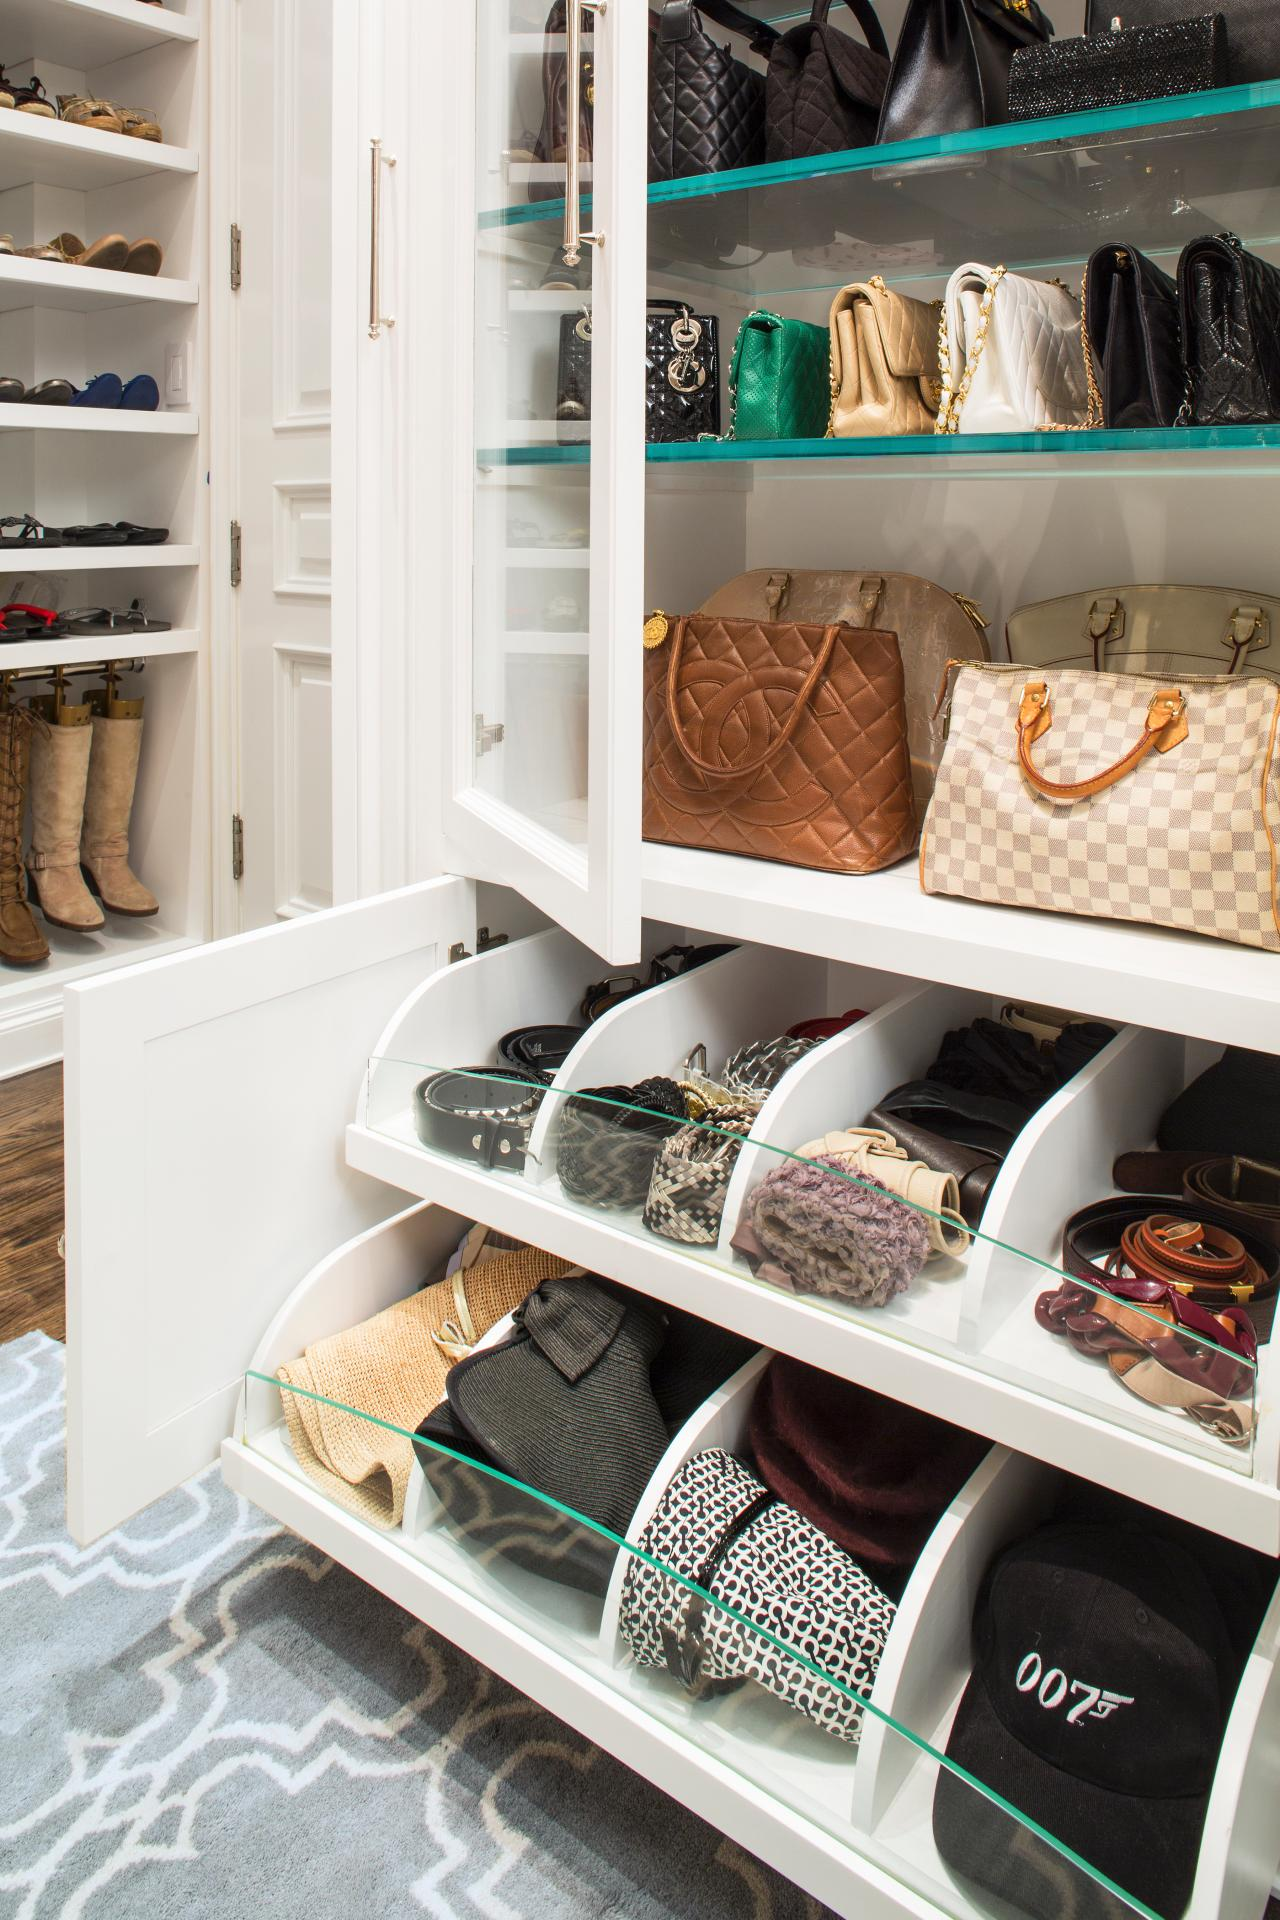 Delightful Purse Holder For Closet Storage Anization. 23. Custom Cabinetry Saves The  Day